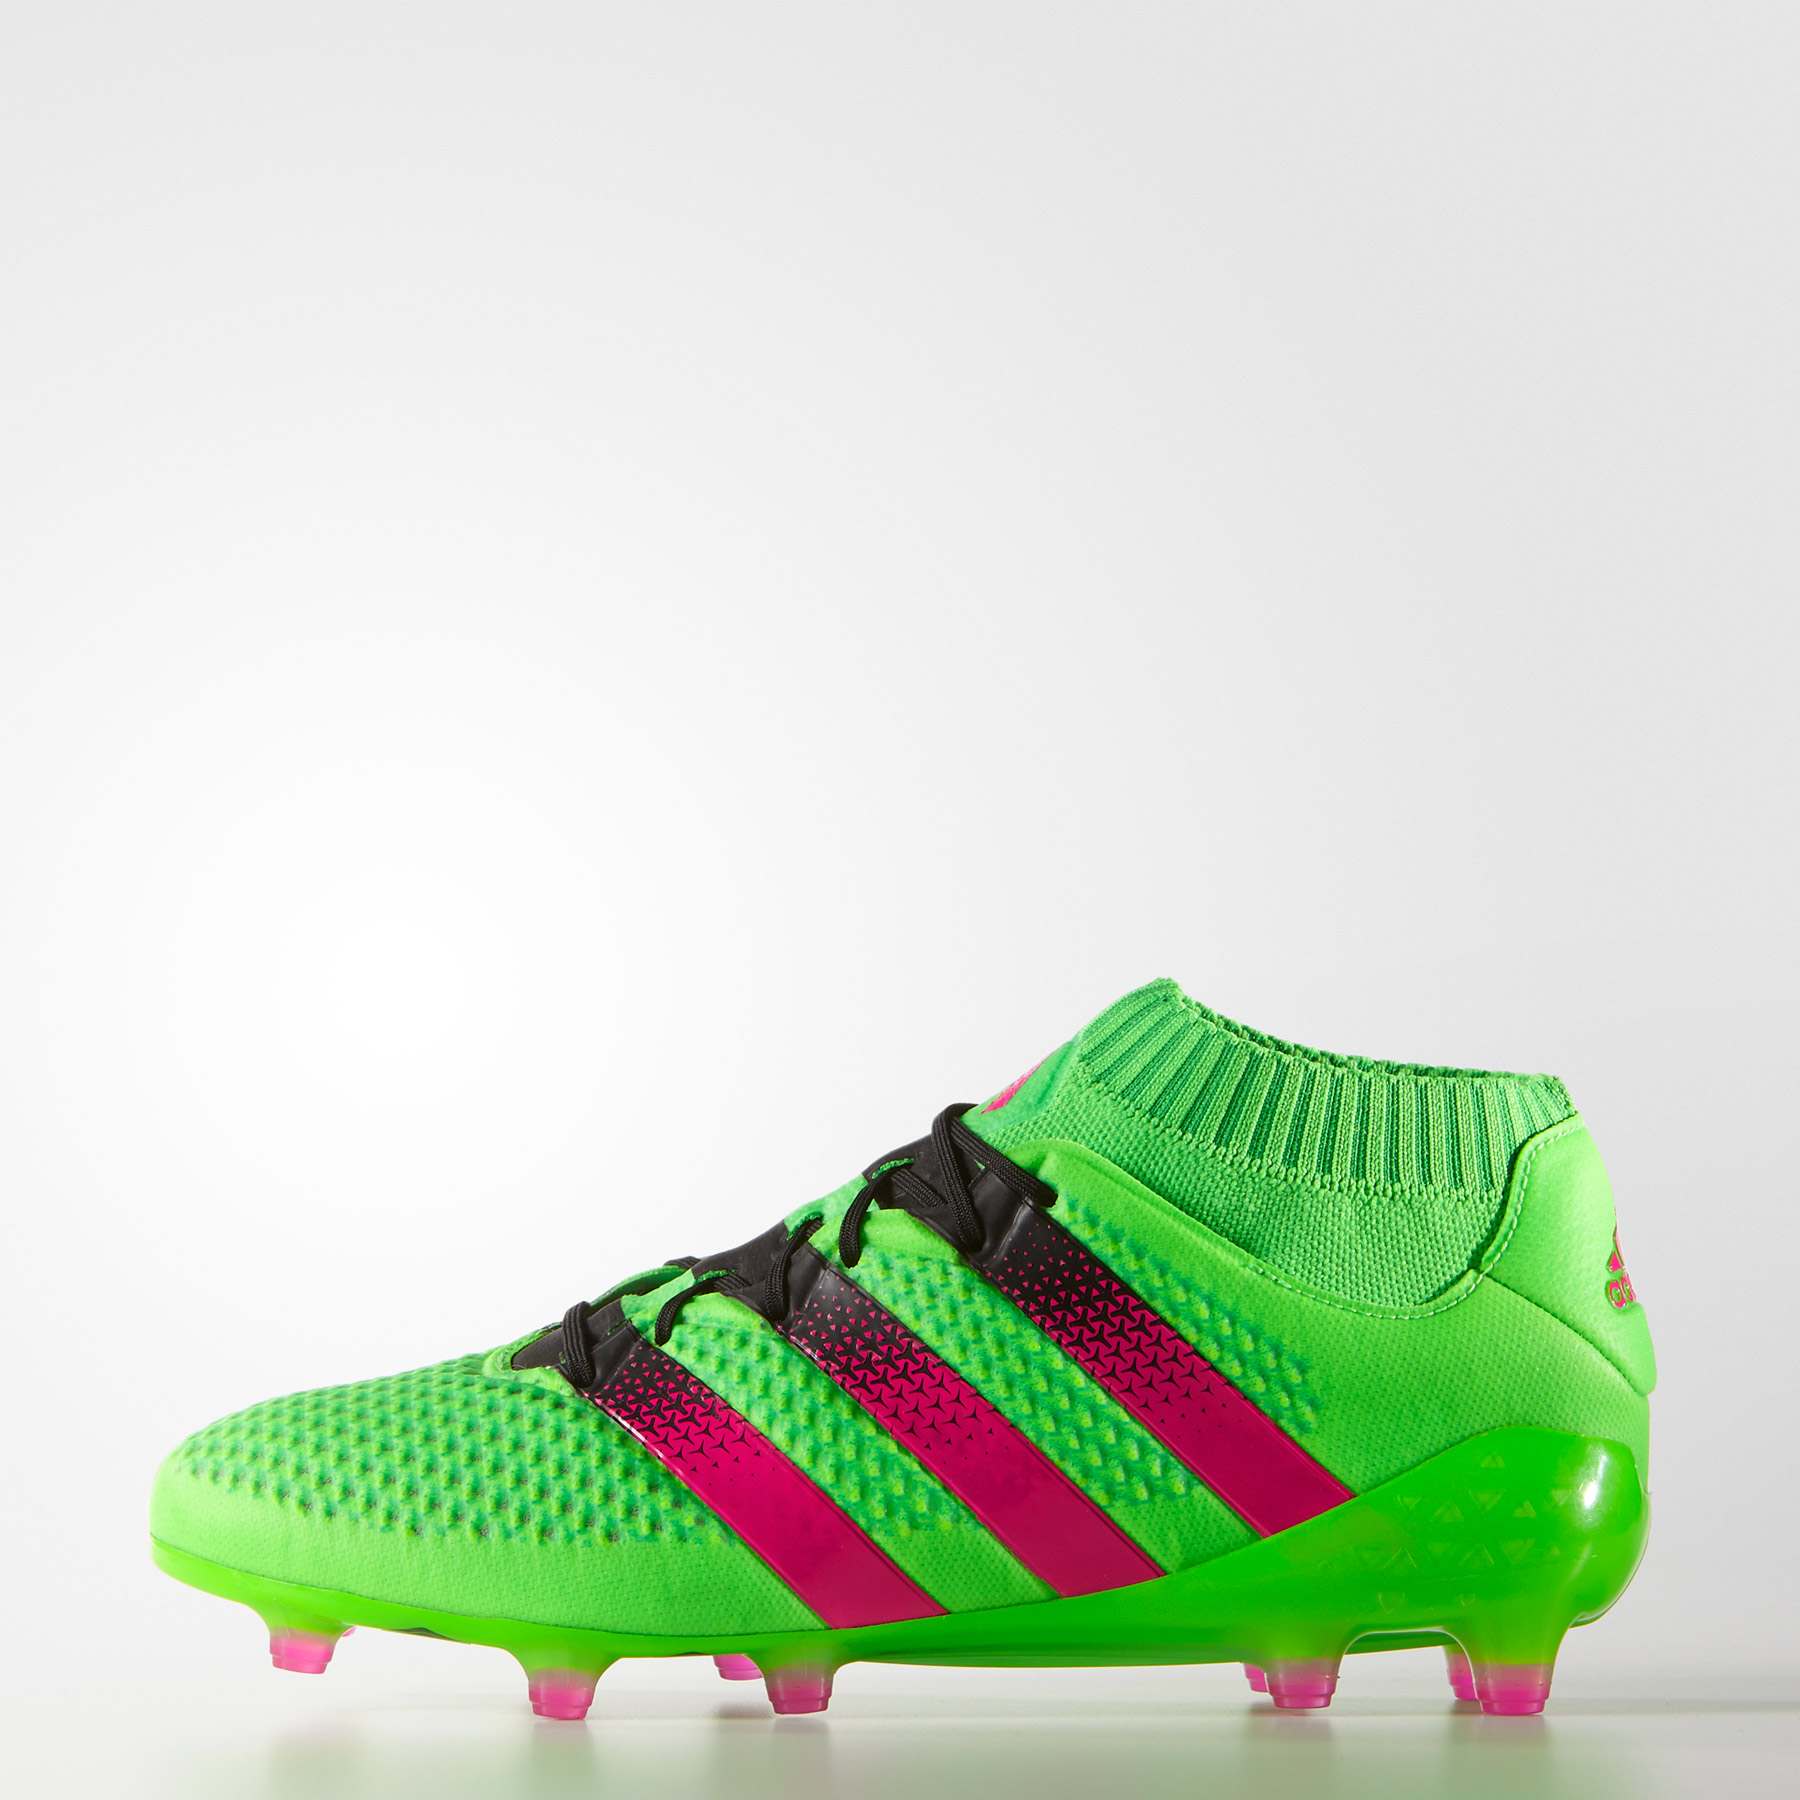 a100f8a51 ... low price adidas ace 16.1 green b5dee 7f230